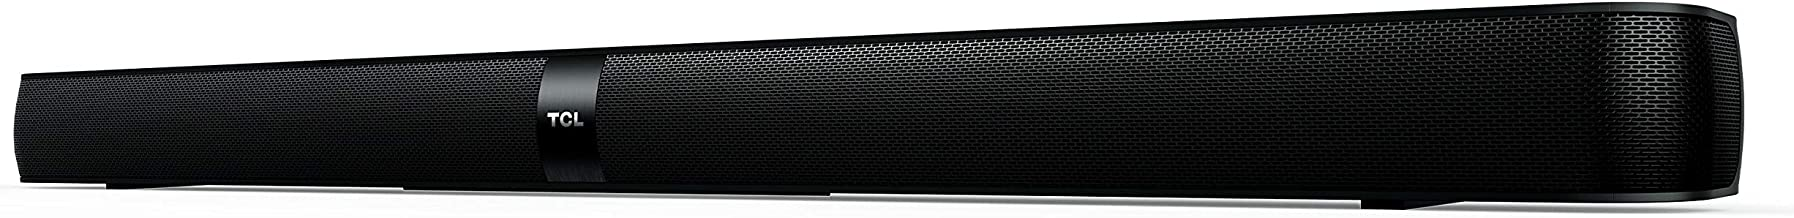 TCL Alto 7 2.0 Channel Home Theater Sound Bar with Built-in Subwoofer - TS7000, 36